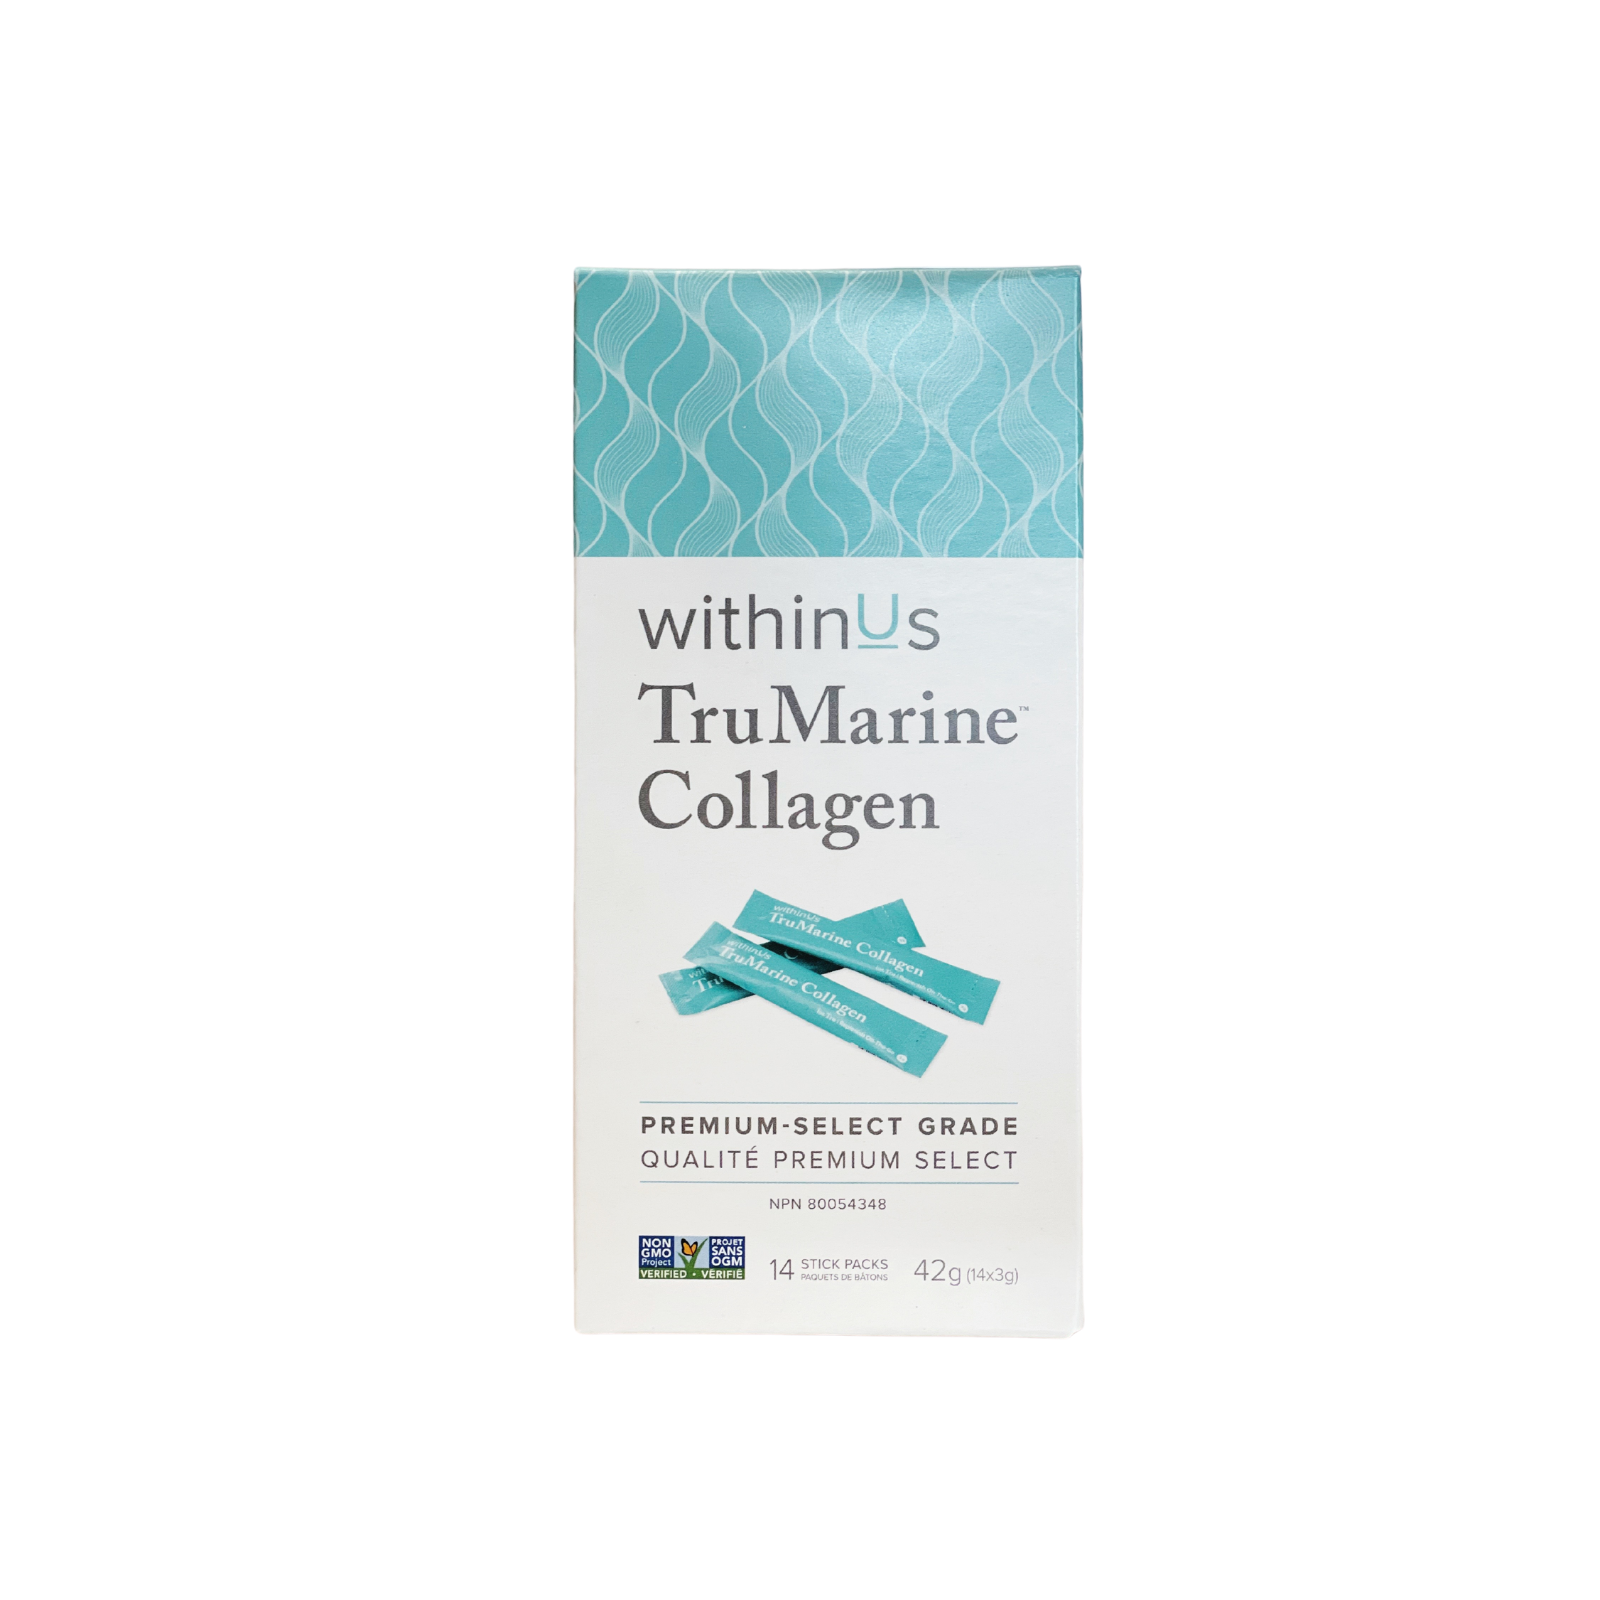 withinUs™ TruMarine® Collagen stick packs - 14 x stick packs